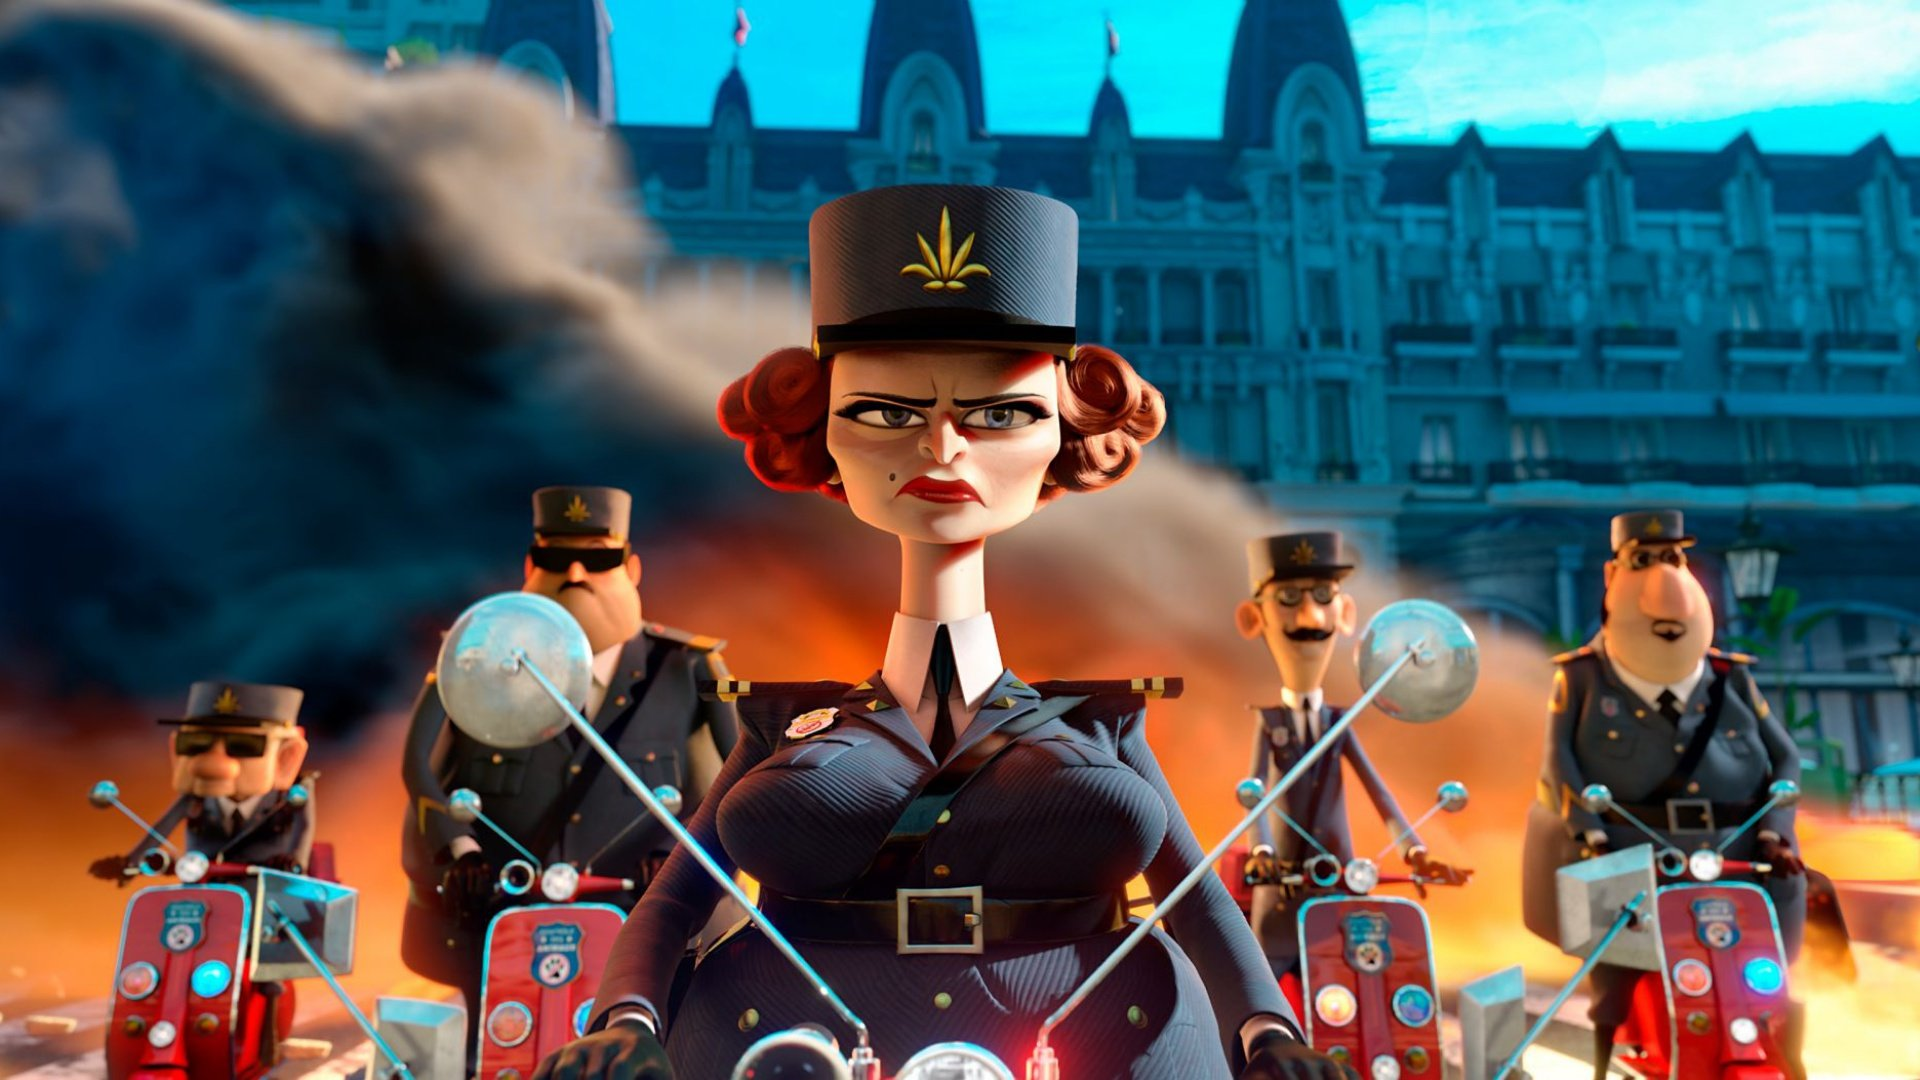 High resolution Madagascar 3: Europe's Most Wanted 1080p wallpaper ID:451721 for desktop